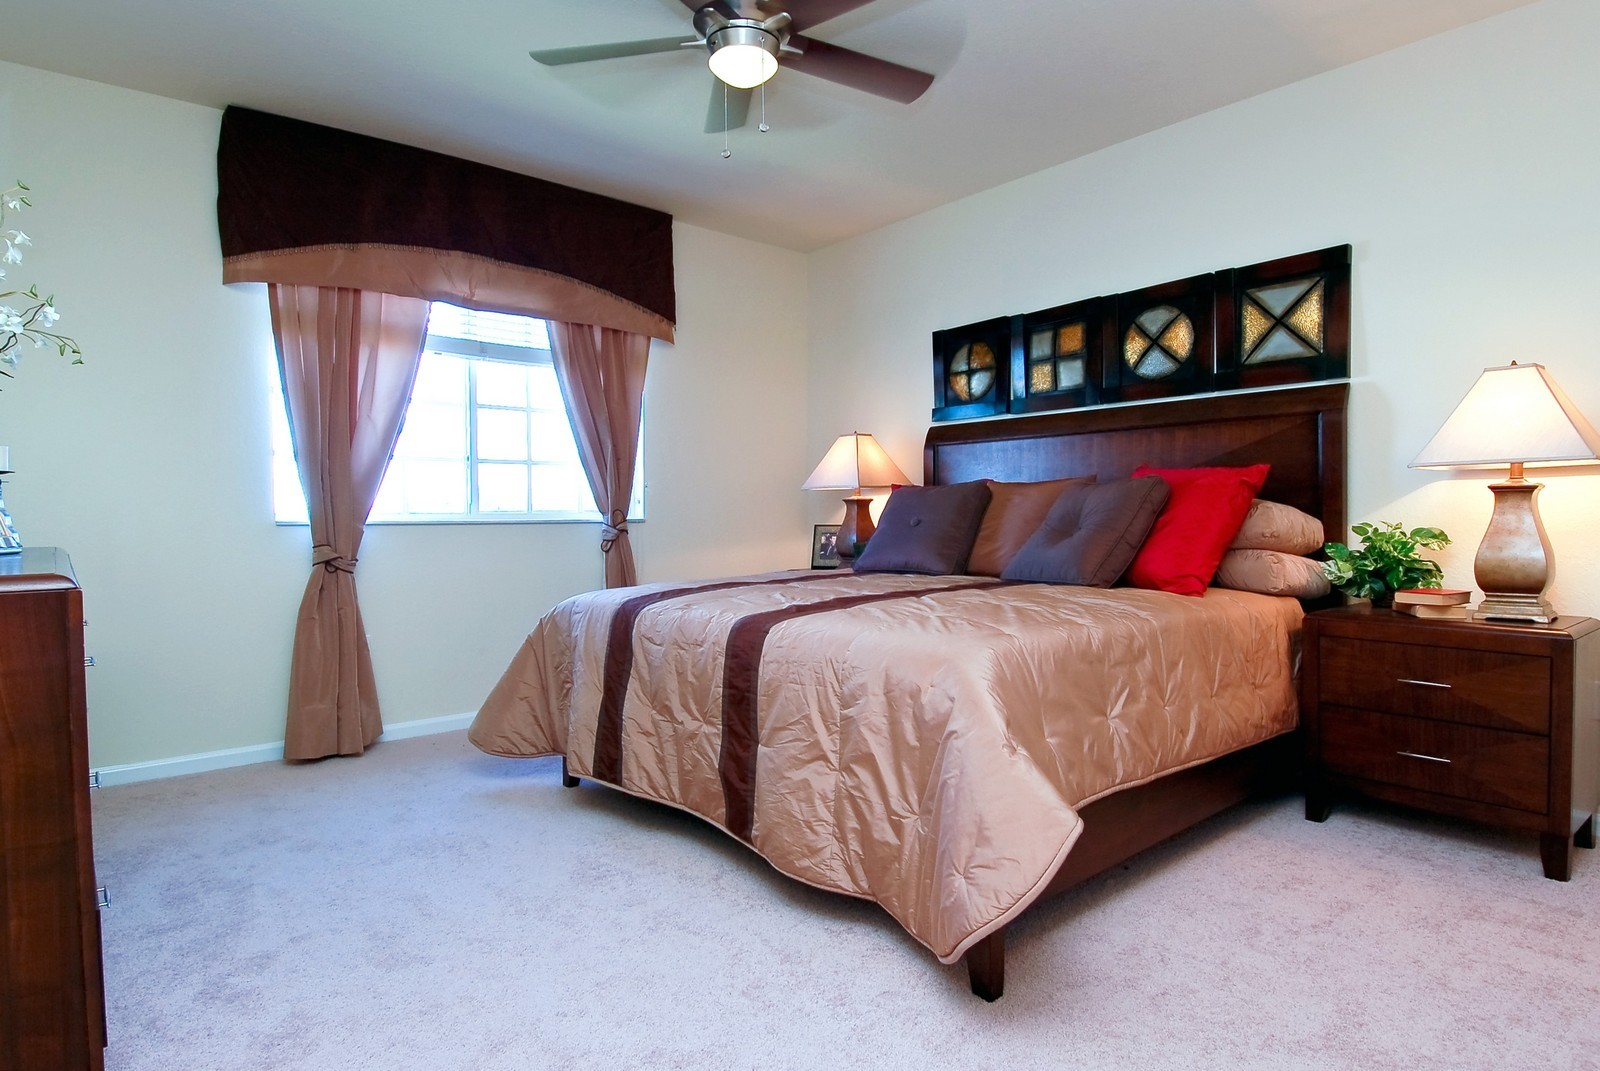 Real Estate Photography - 3169 NW 32nd St, Cayman Model, Oakland Park, FL, 33309 - Master Bedroom